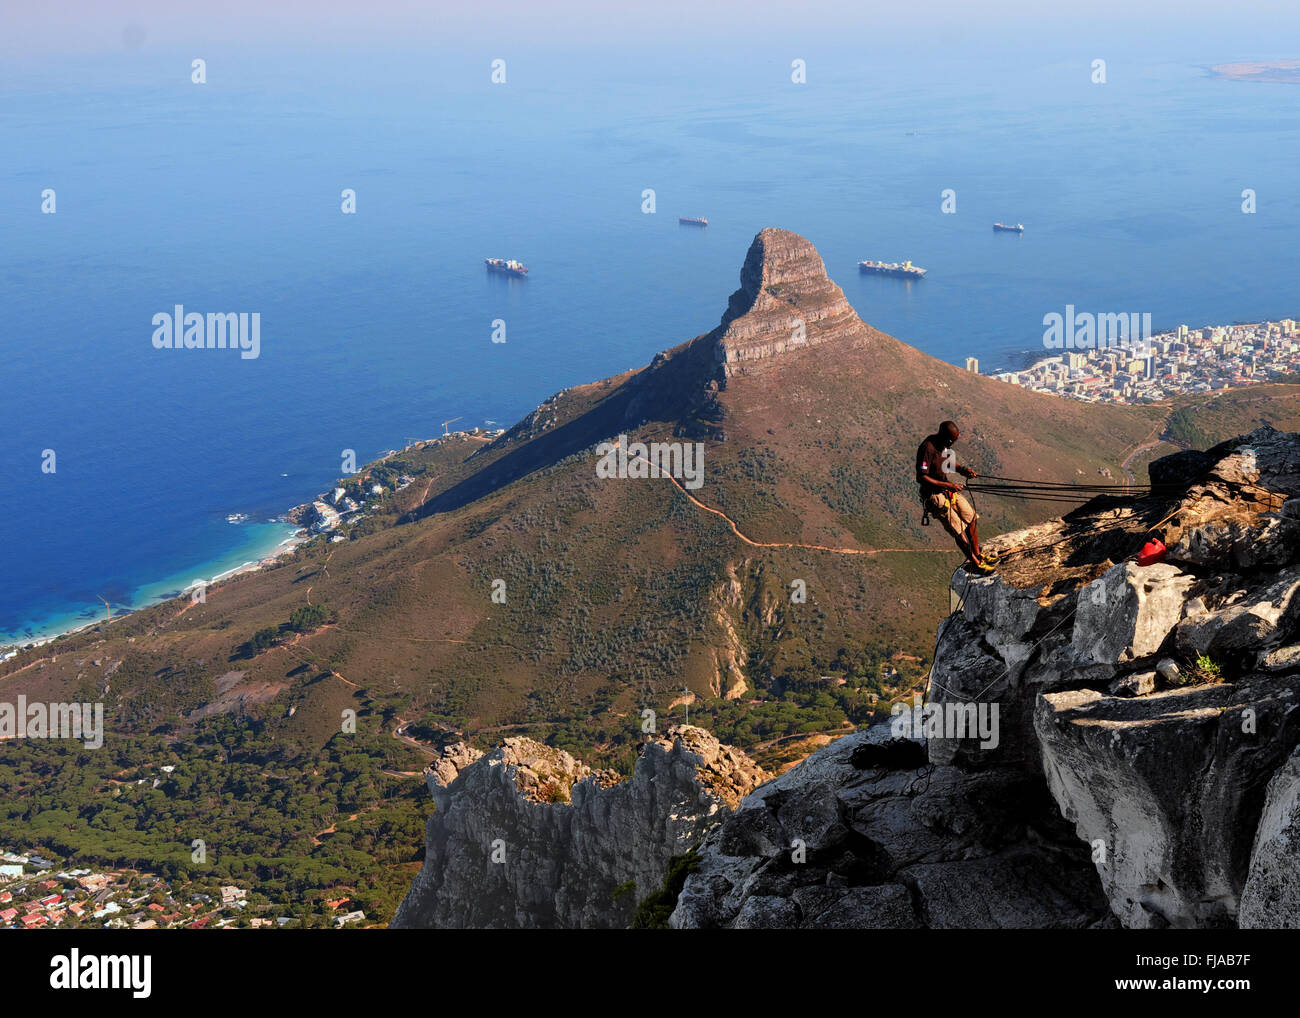 Man preparing to abseil down table mountain in Cape Town, with Lion's Head and the ocean in the background Stock Photo